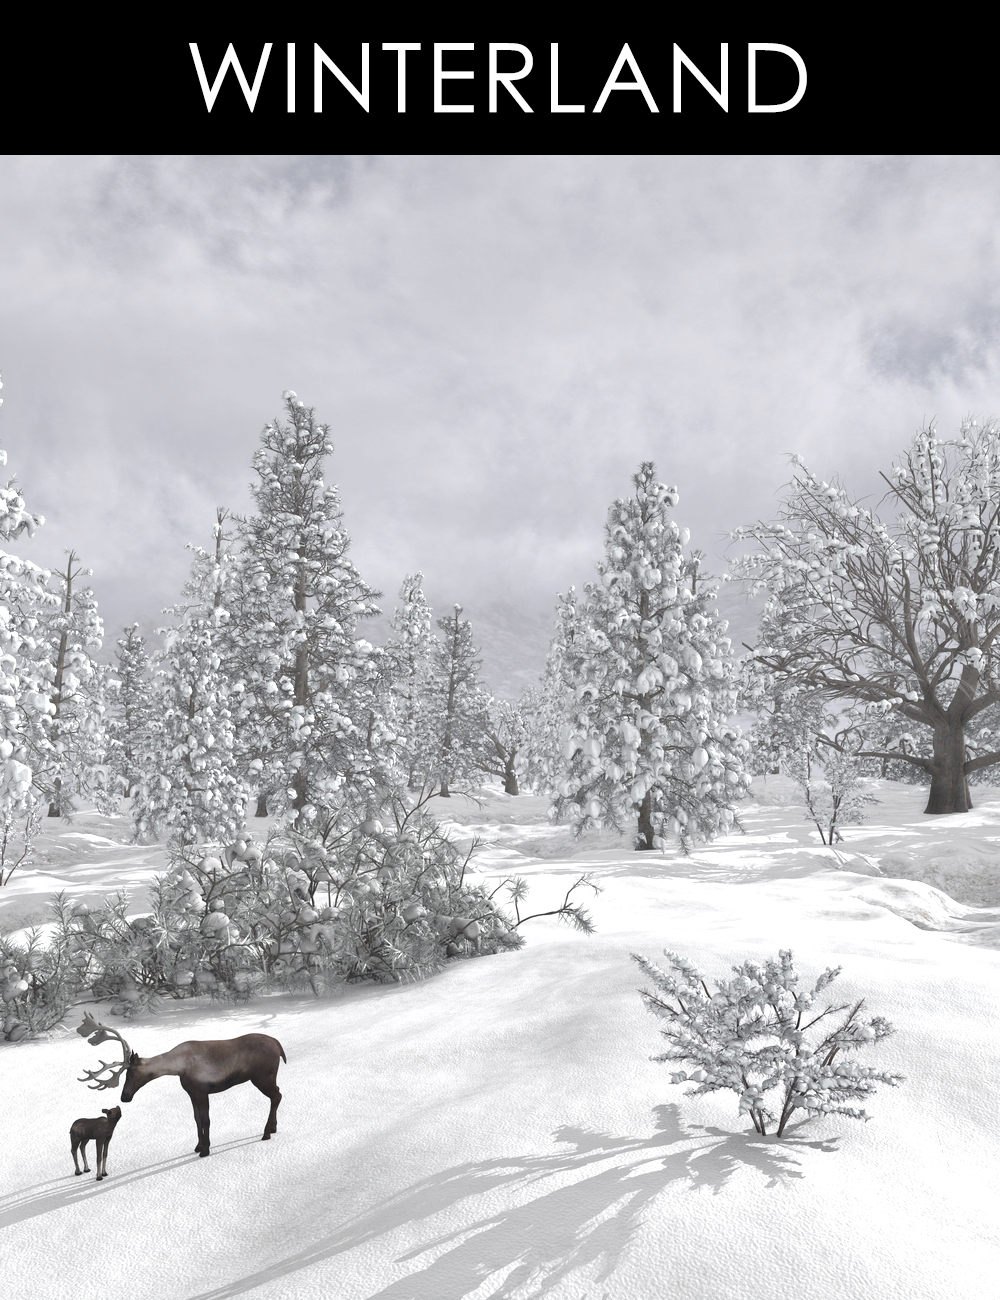 Winterland by: Alessandro_AMLMX3D, 3D Models by Daz 3D